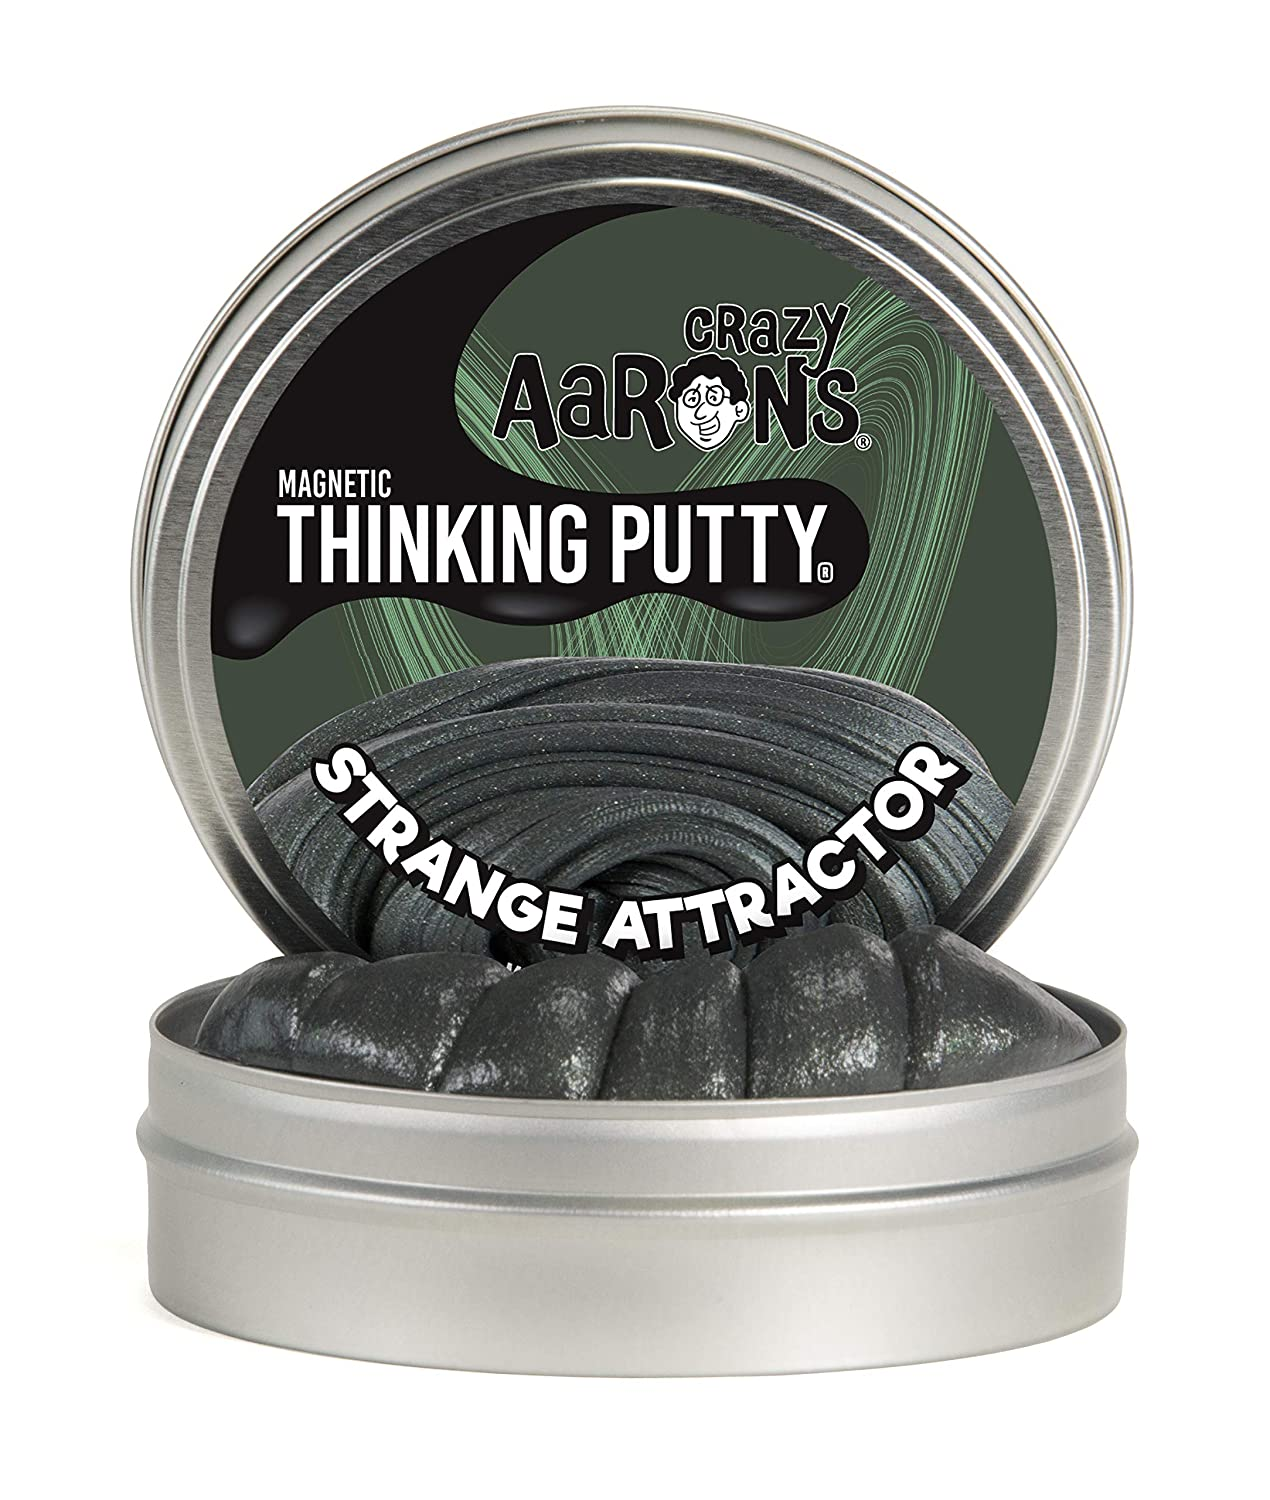 Crazy Aarons Thinking Putty 32 Ounce Super Magnetic Fresh Johnny Five Short Circuit Robot Tee Metallic Blk Shirt Ebay Strange Attractor Toys Games